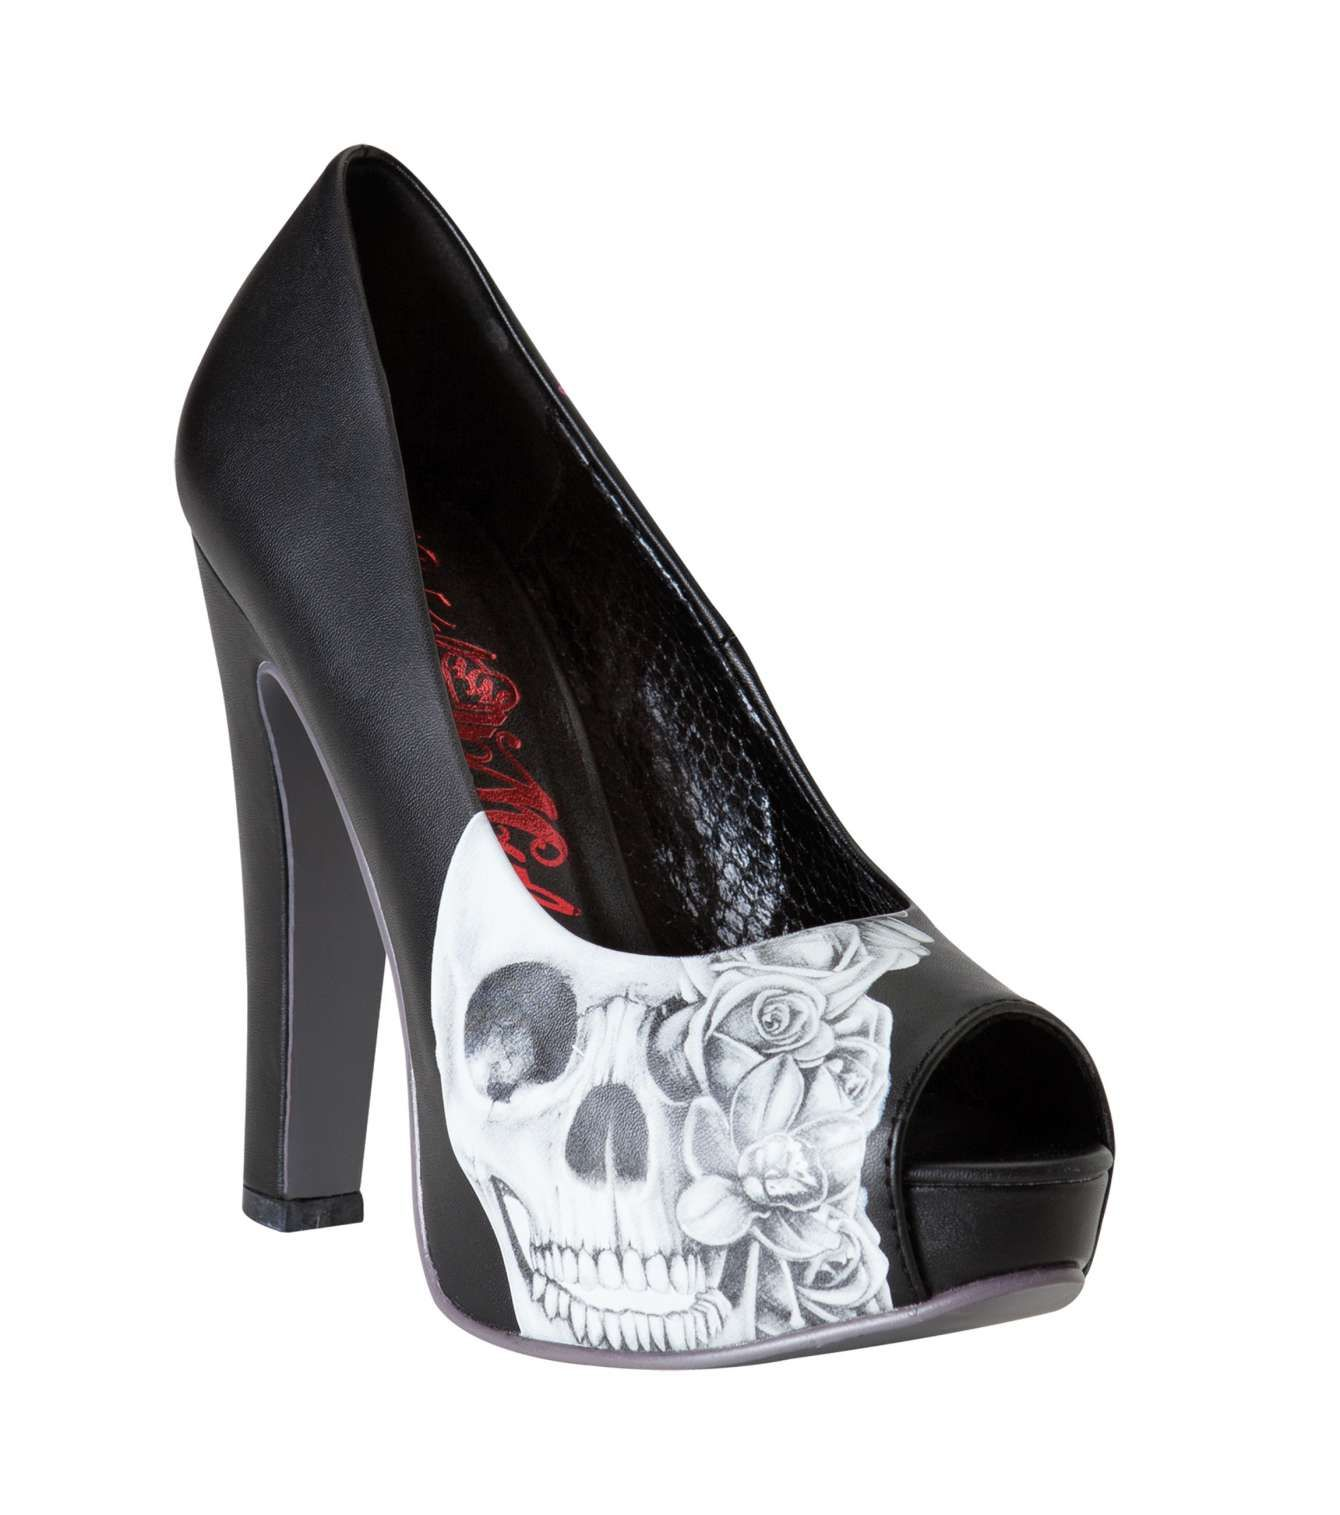 Metal Mulisha Maidens HEARTLESS PUMPS! Black heels with skull artwork and red detail! $60.00